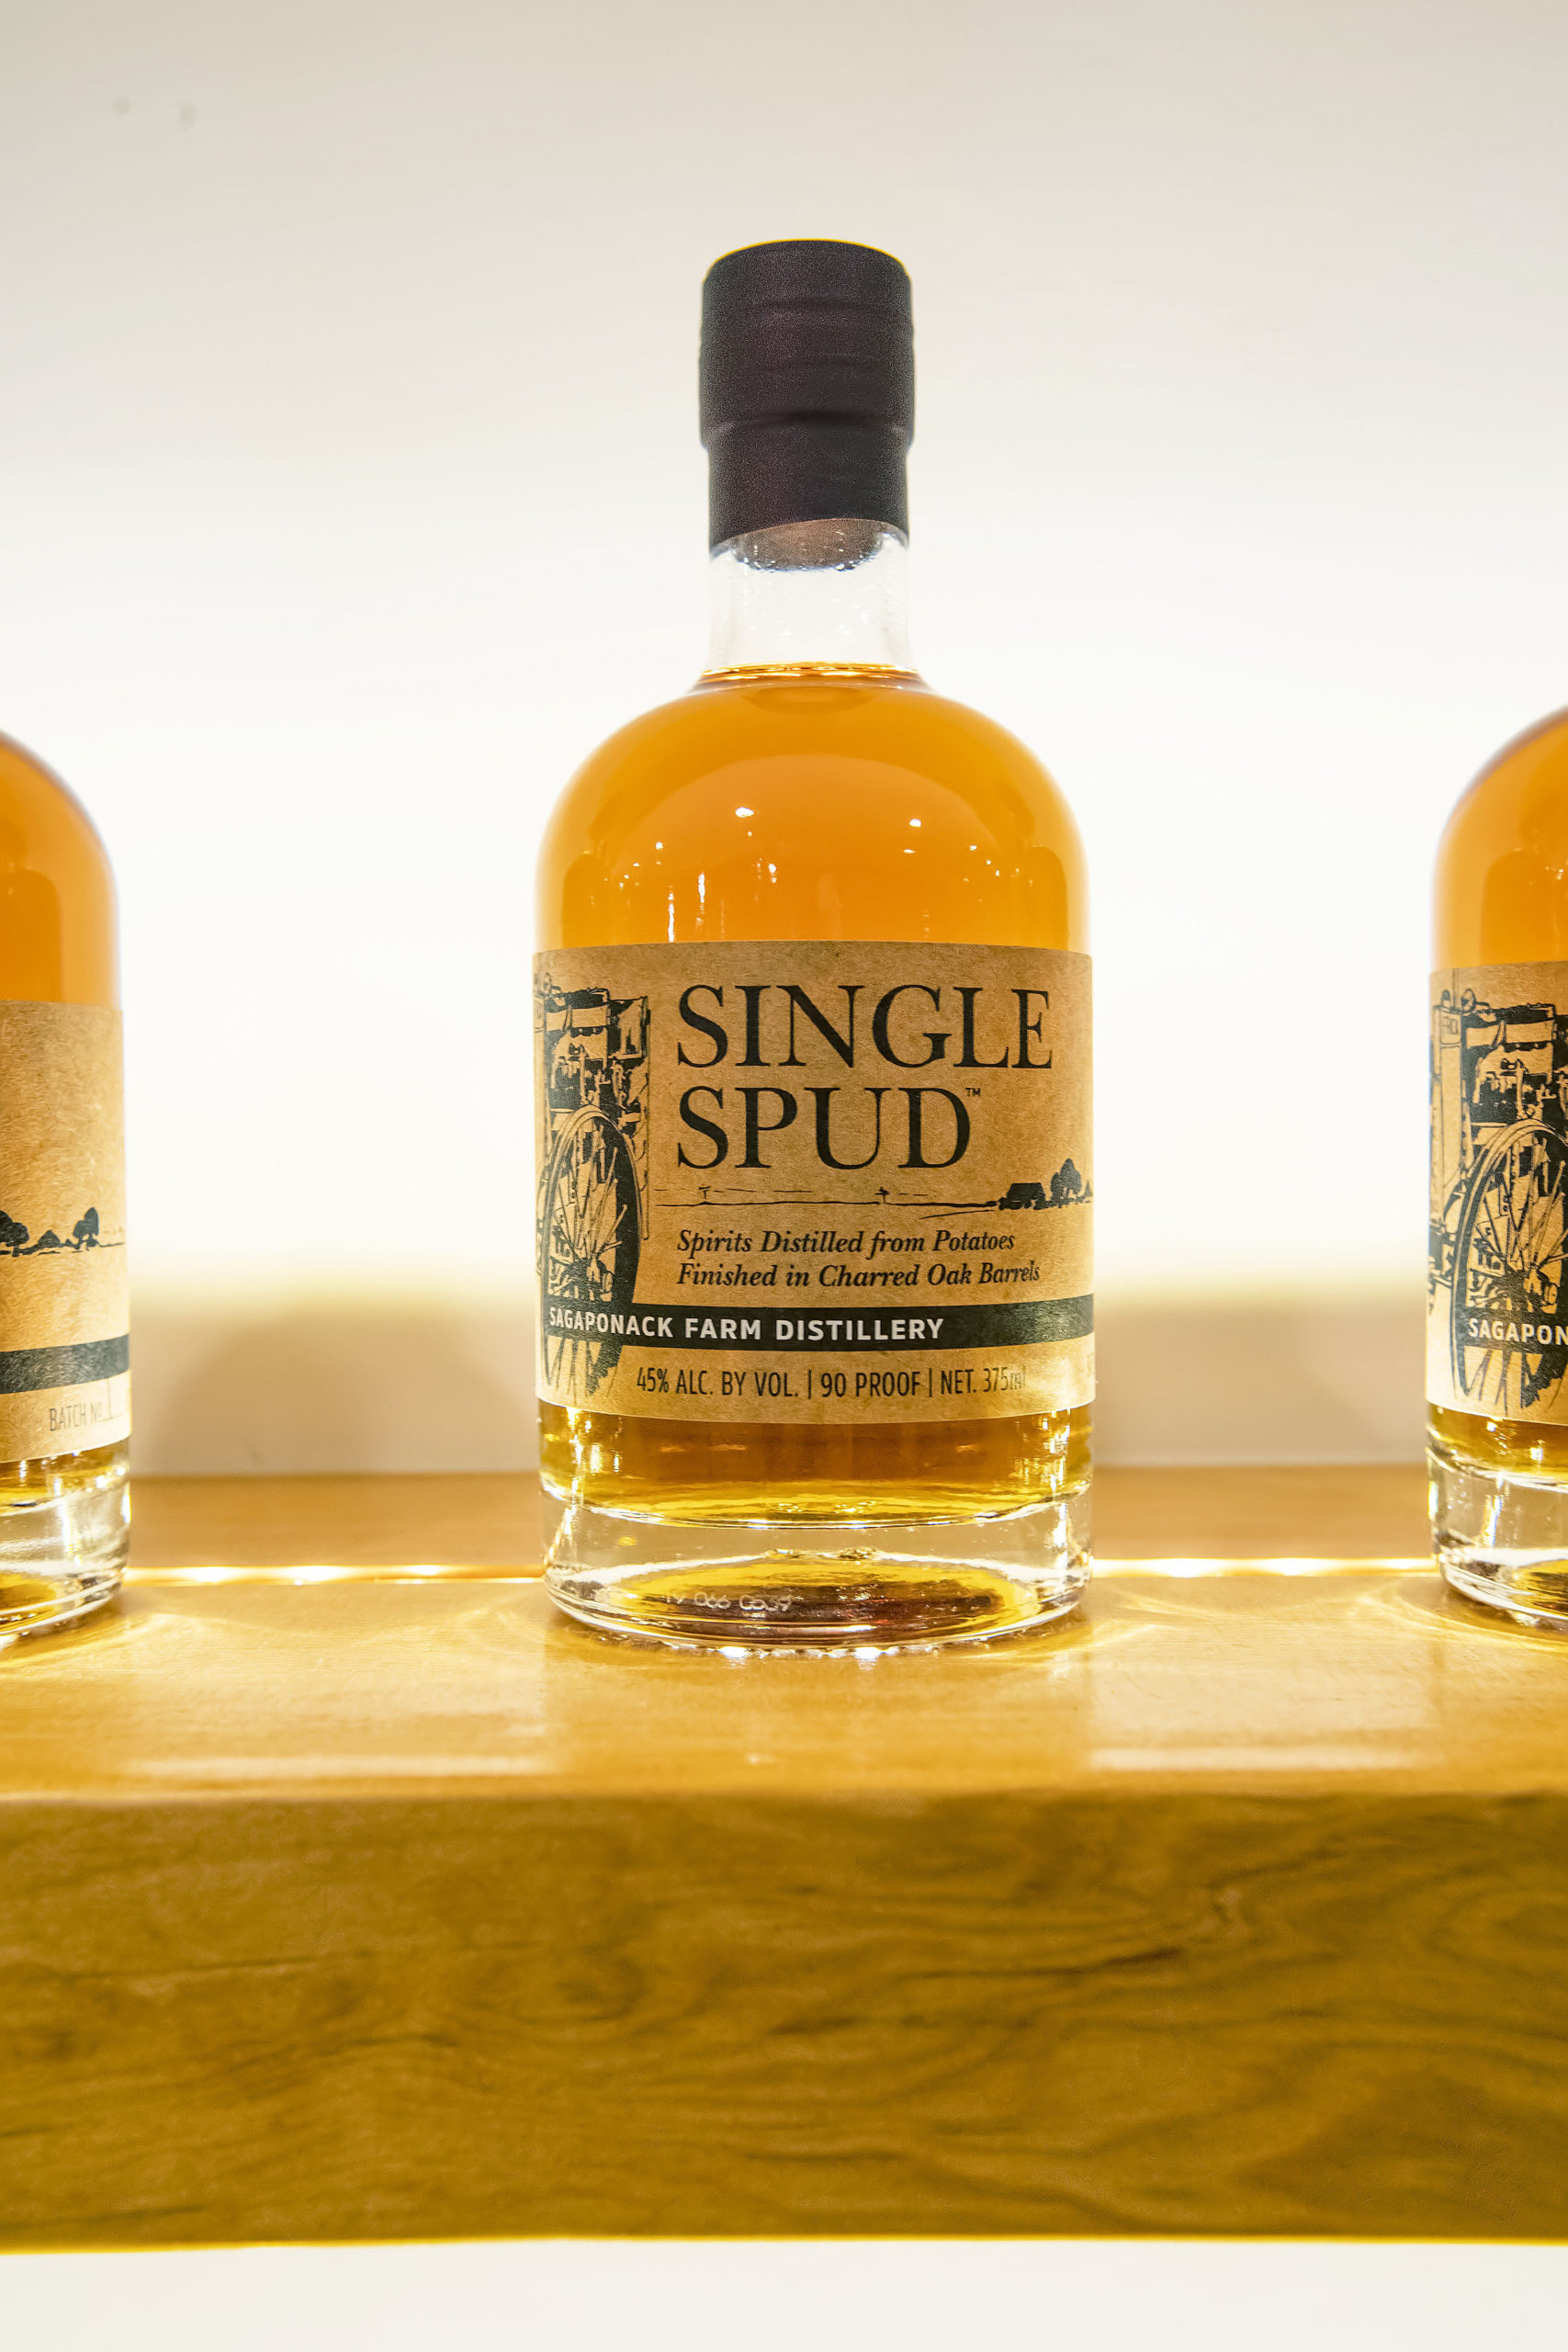 Single Spud, a spirit distilled from potatoes and finished in an oak barrel. MICHAEL HELLER